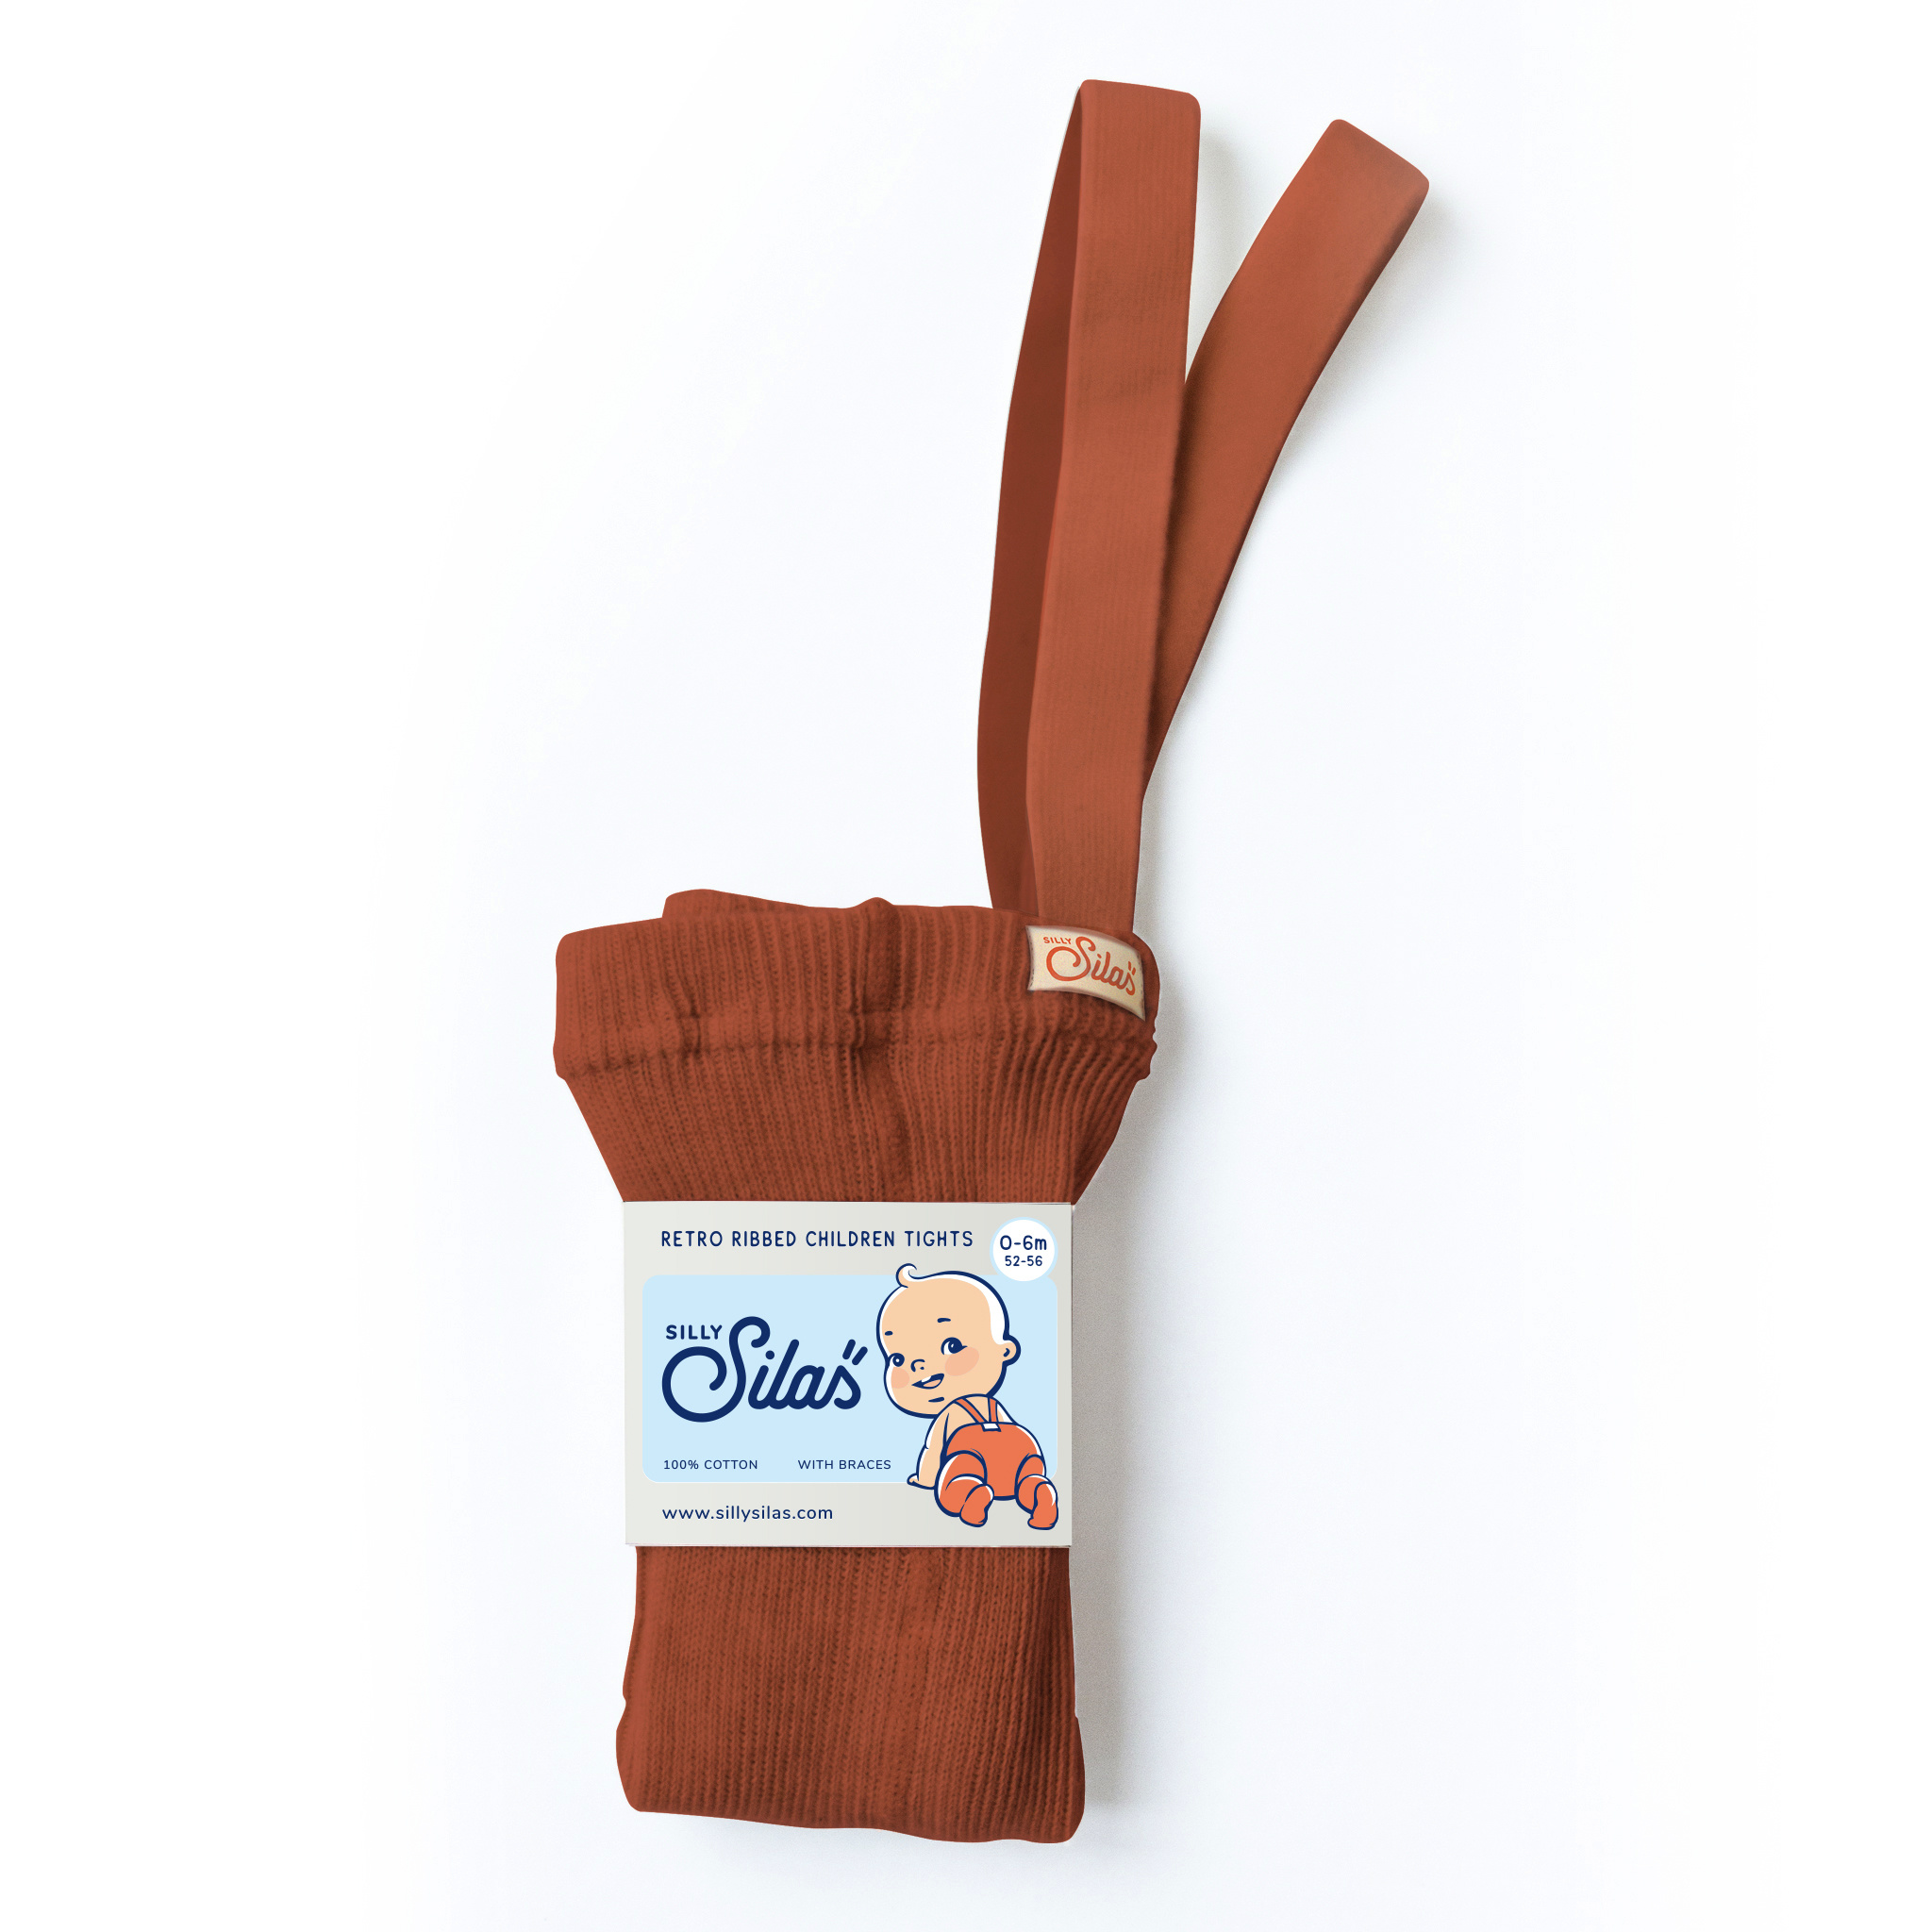 Silly Silas tights with braces - 100% cotton - cinnamon - 0 m to 3 years